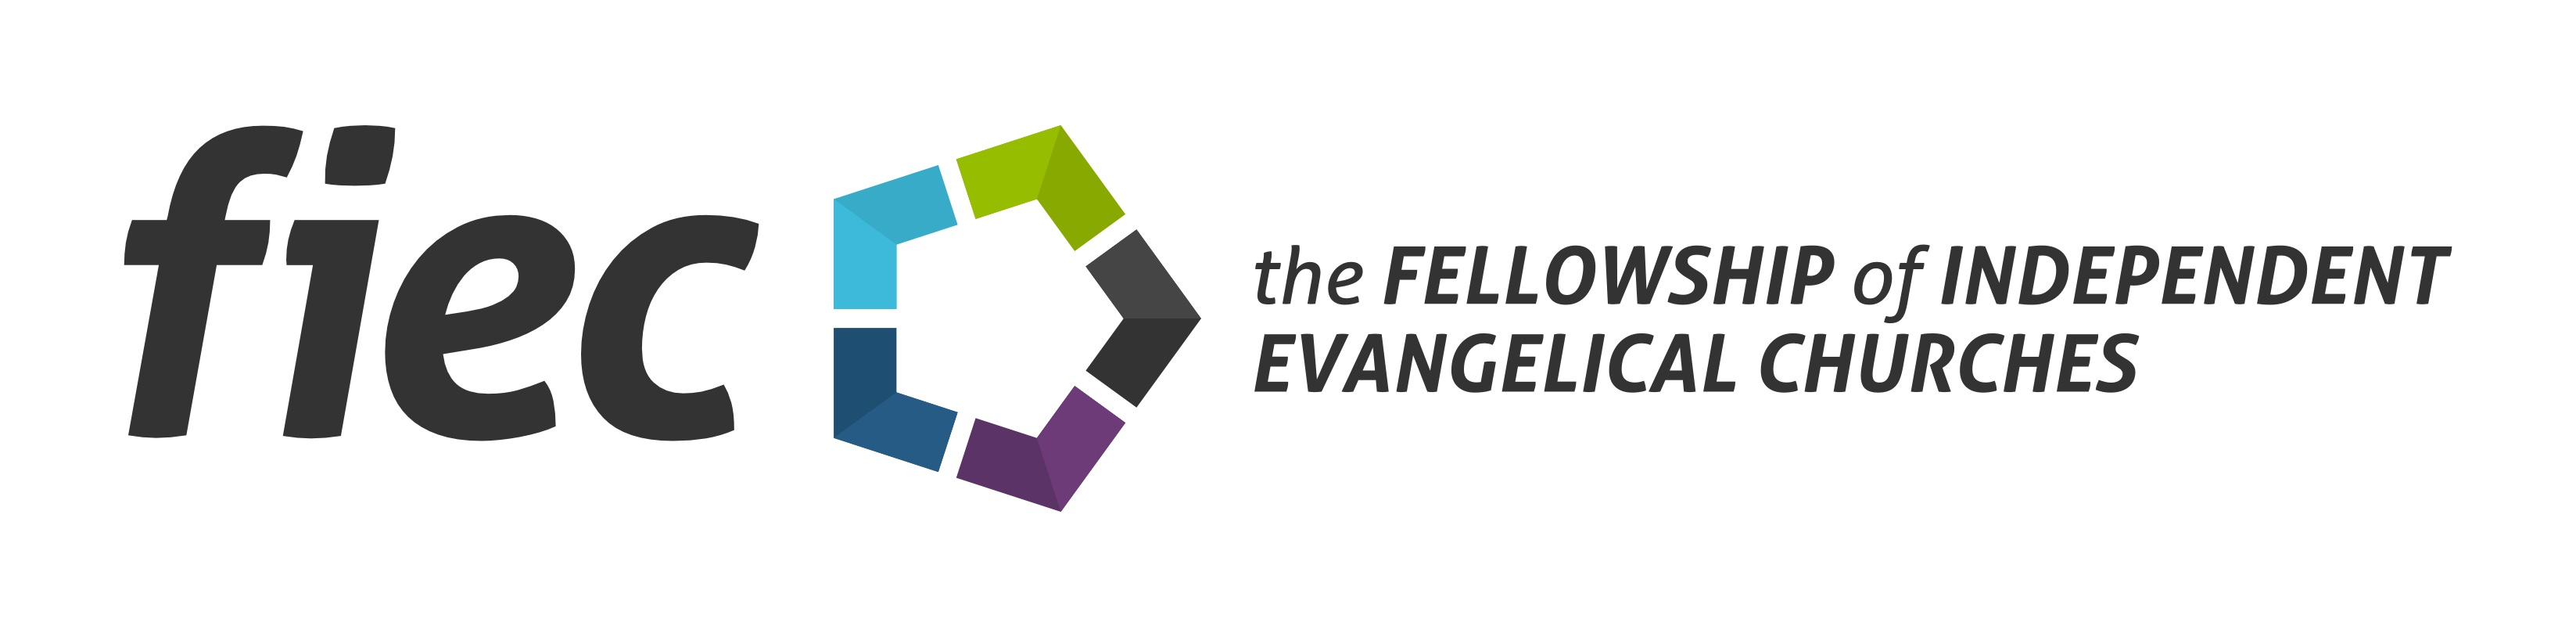 The Fellowship of Independent Evangelical Churches